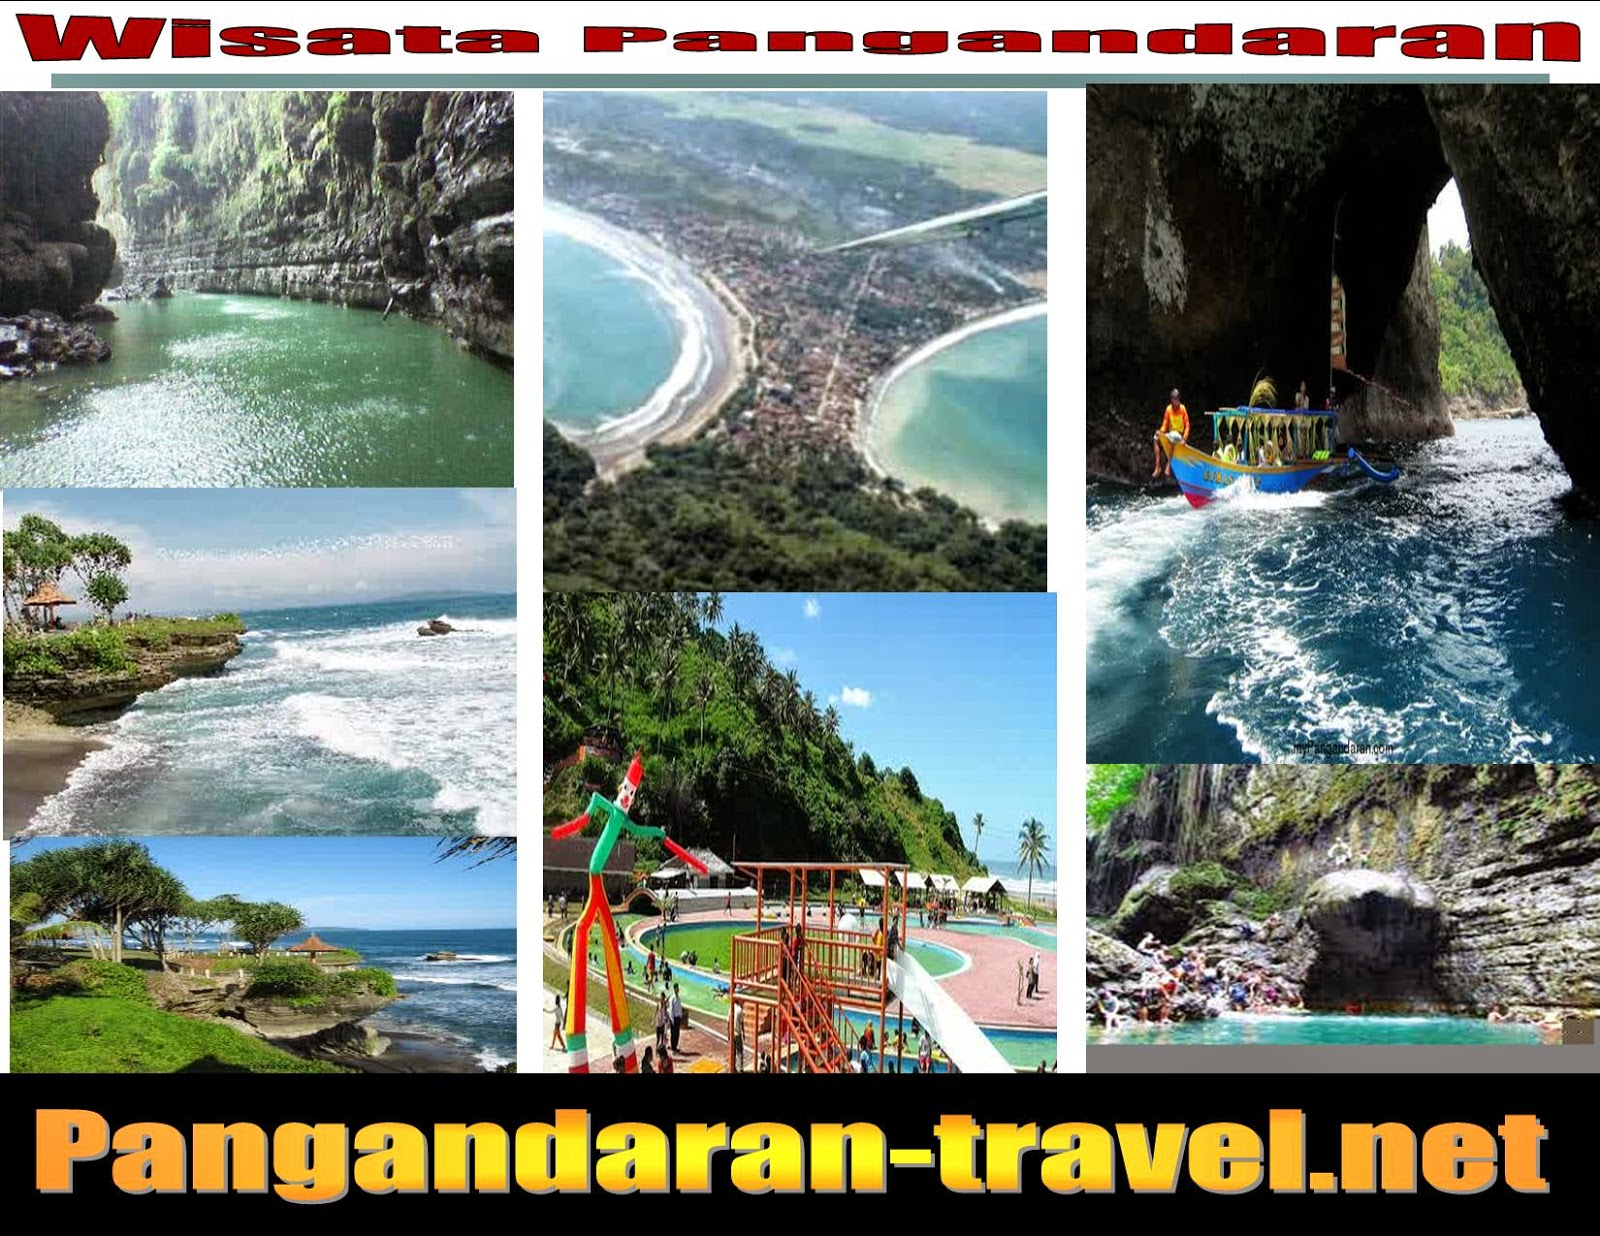 http://pangandaran-travel.net/